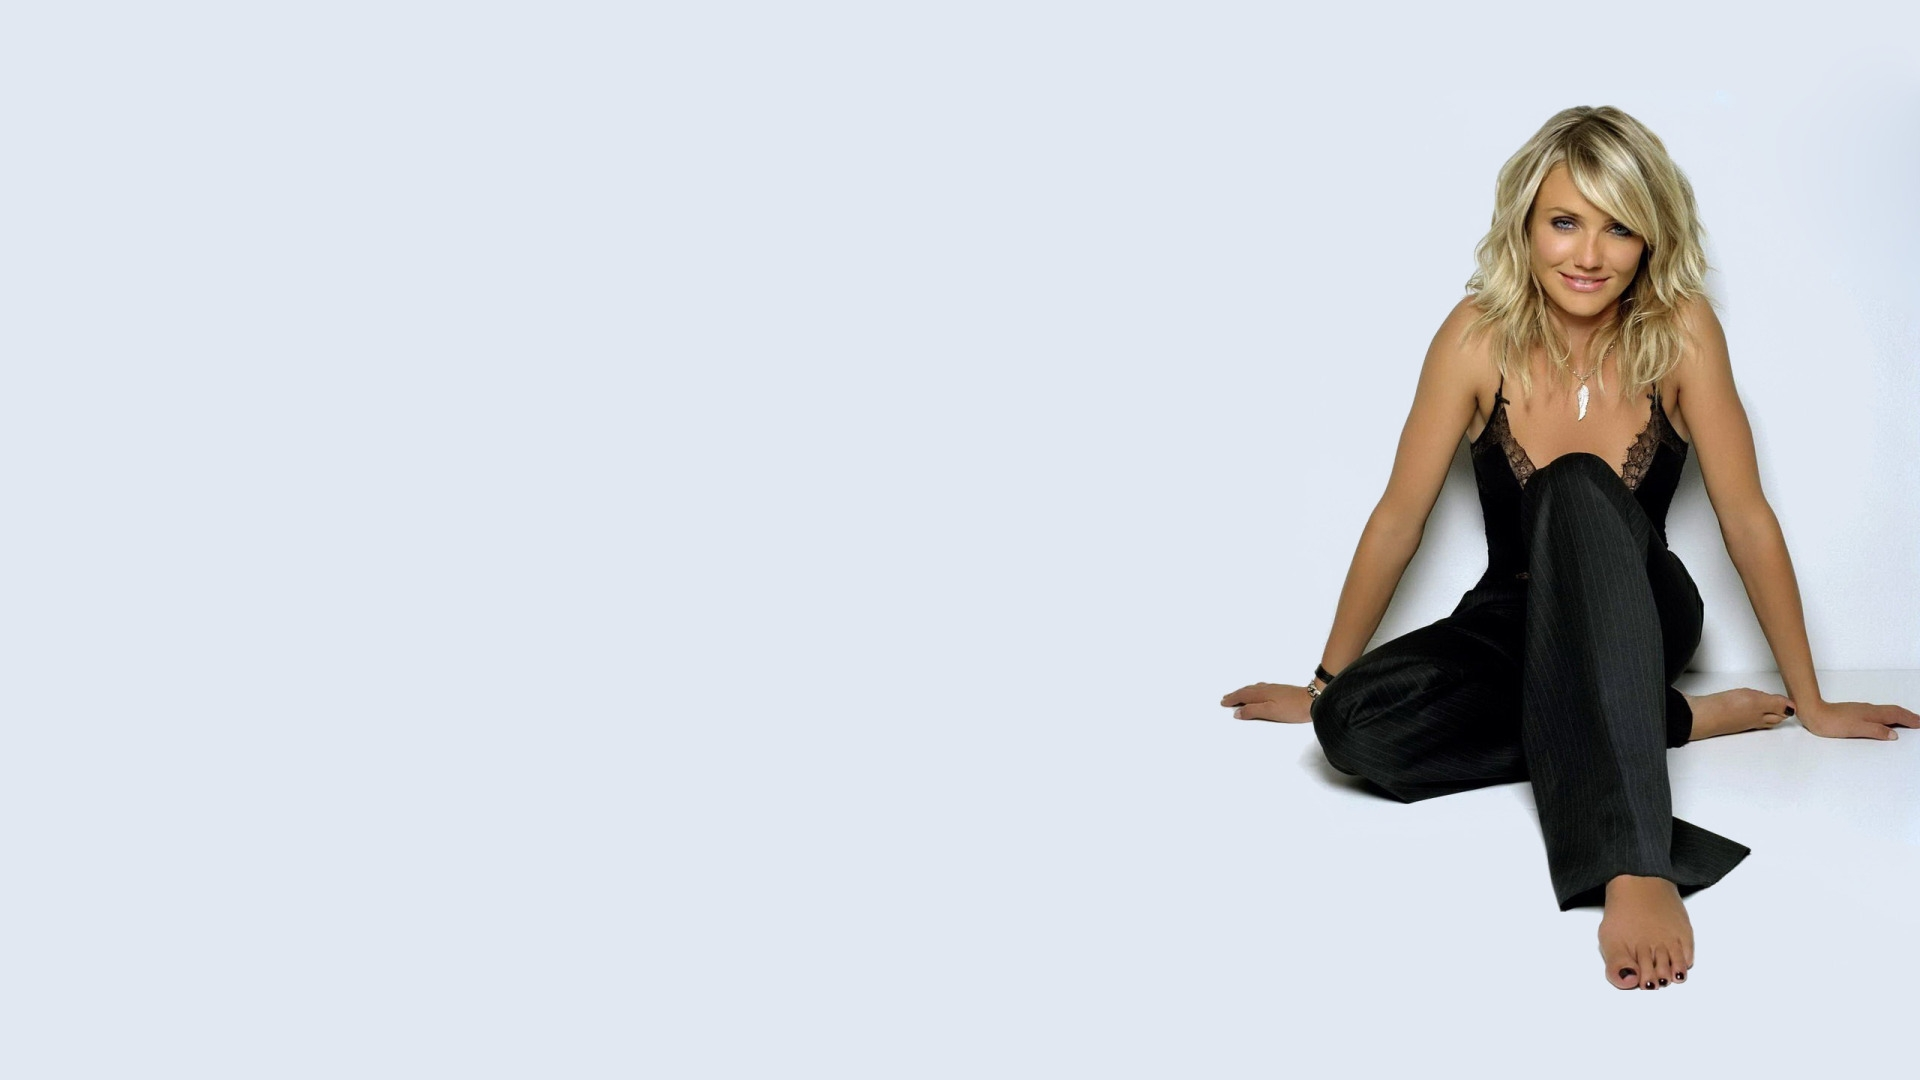 Cameron Diaz Backgrounds 4K Download 1920x1080